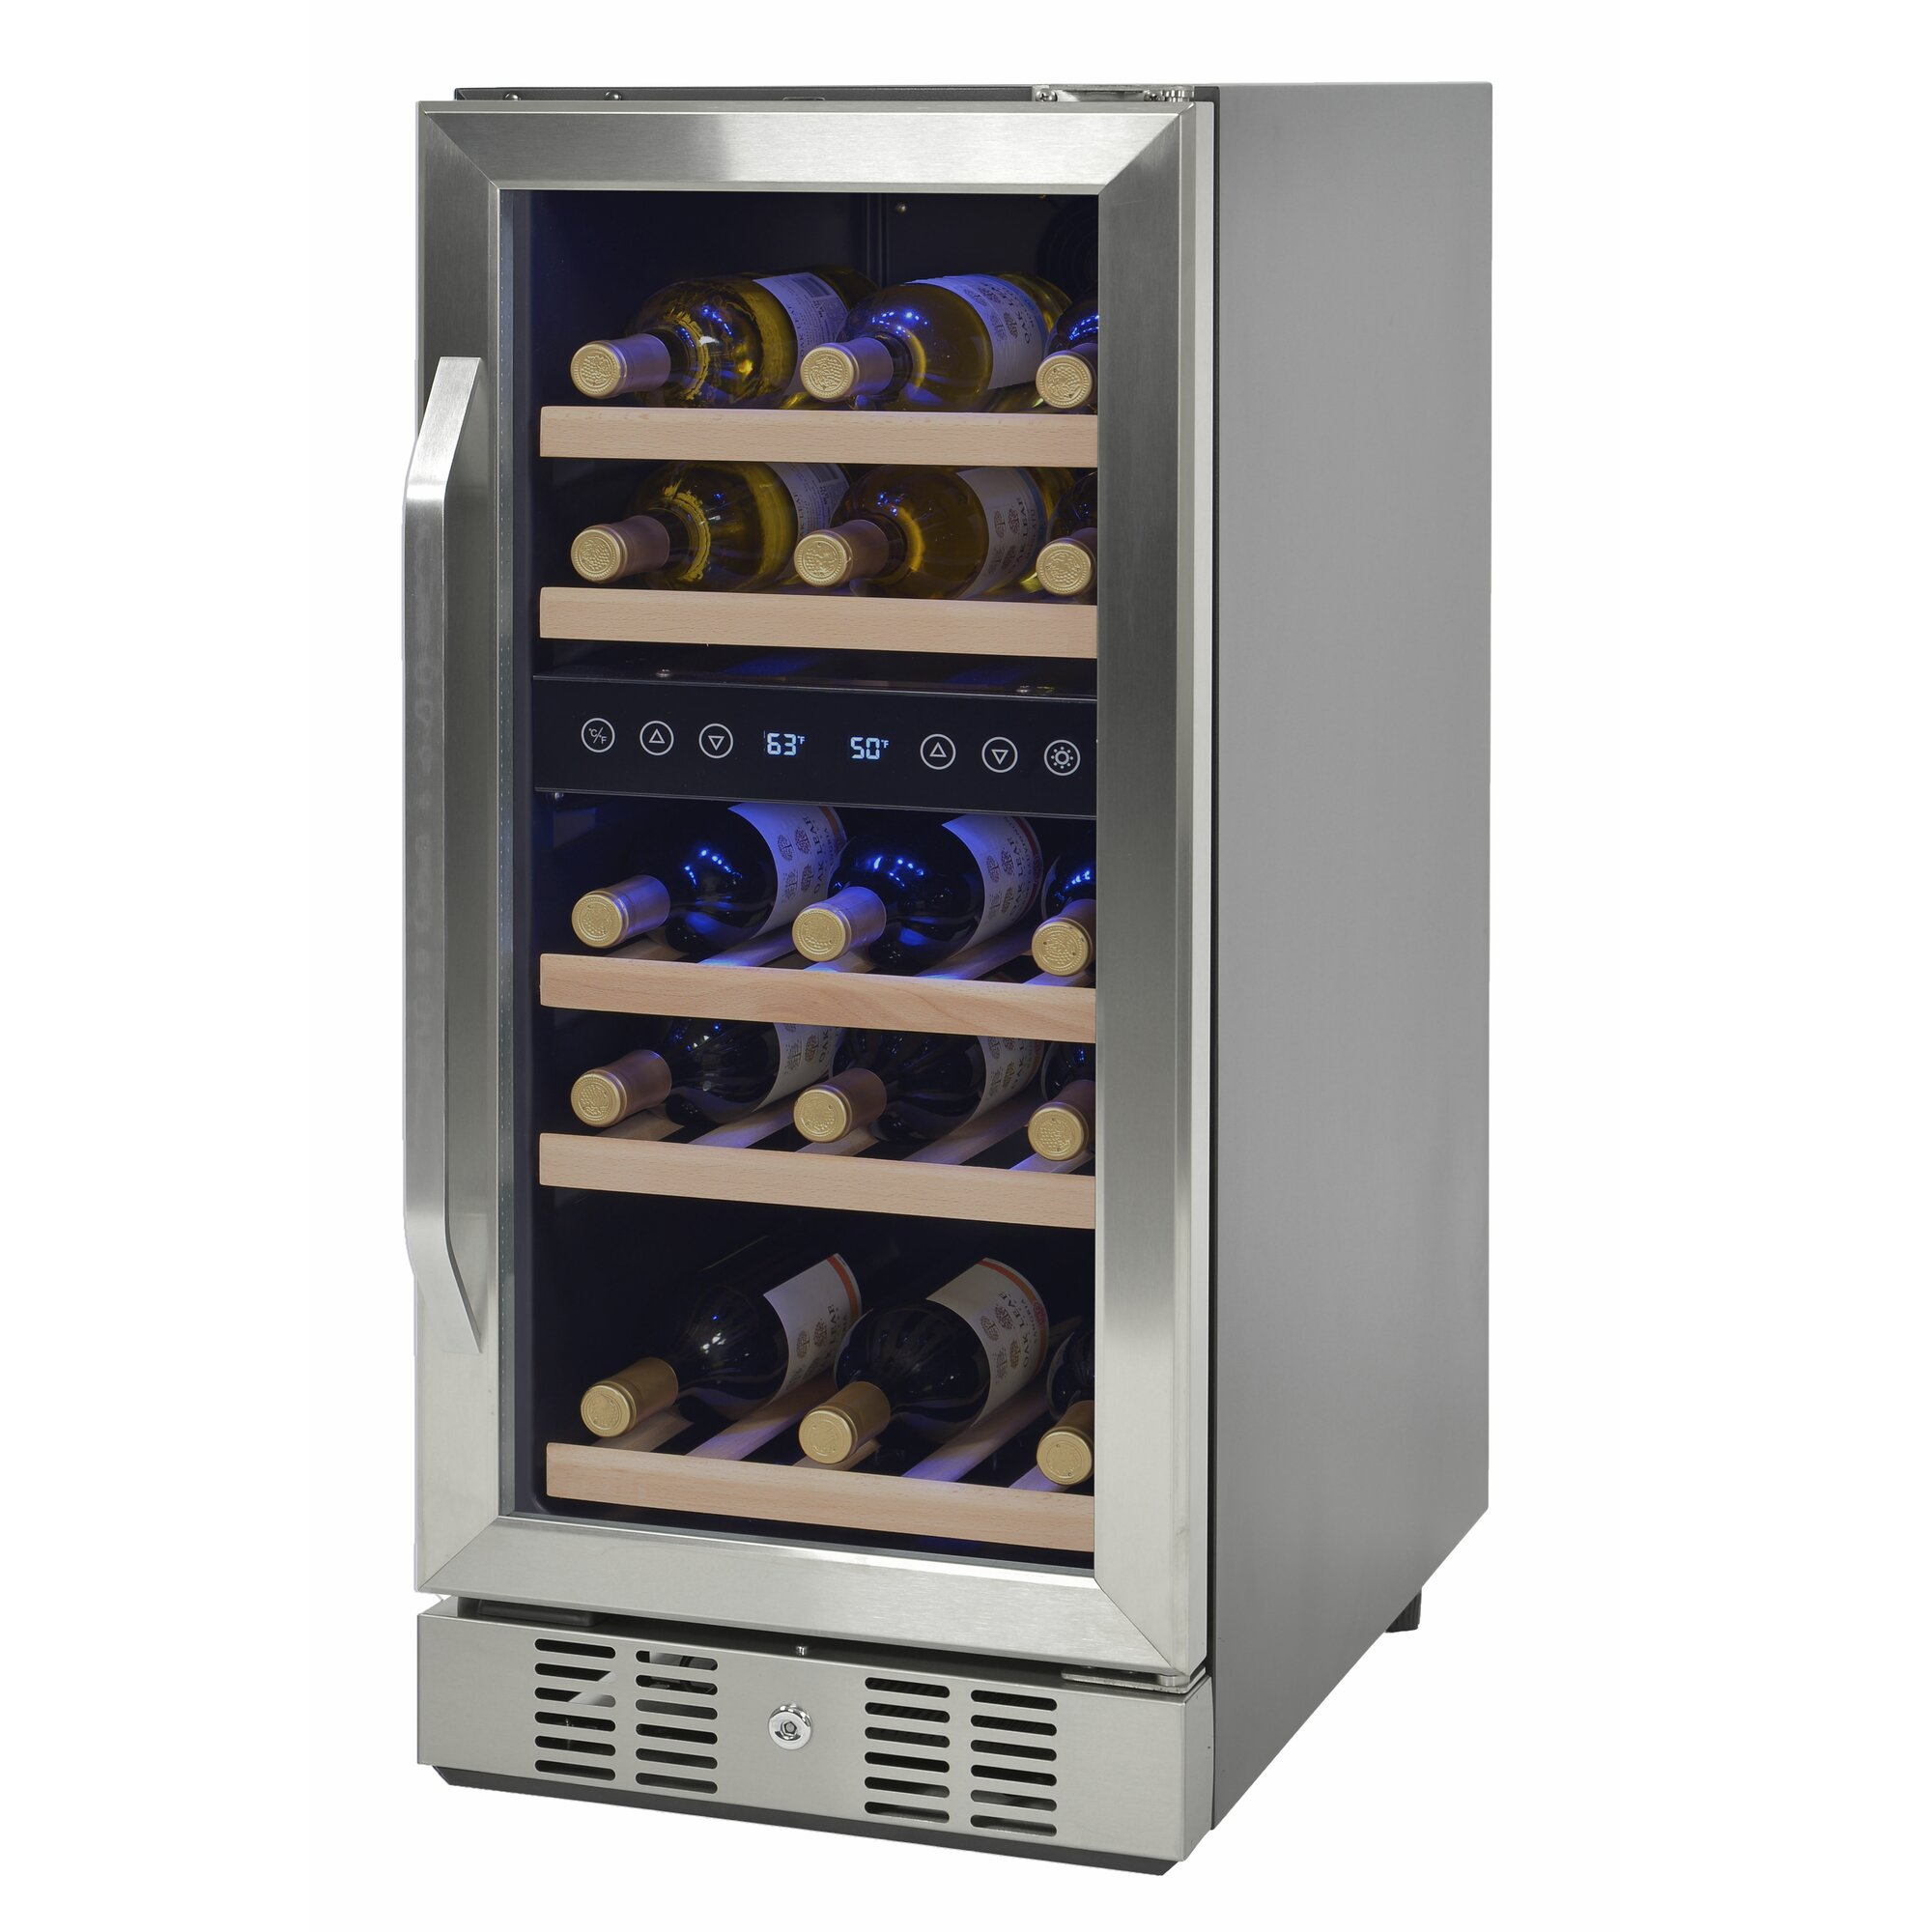 dual zone wine cooler newair 29 bottle dual zone built in wine cooler amp reviews 31169